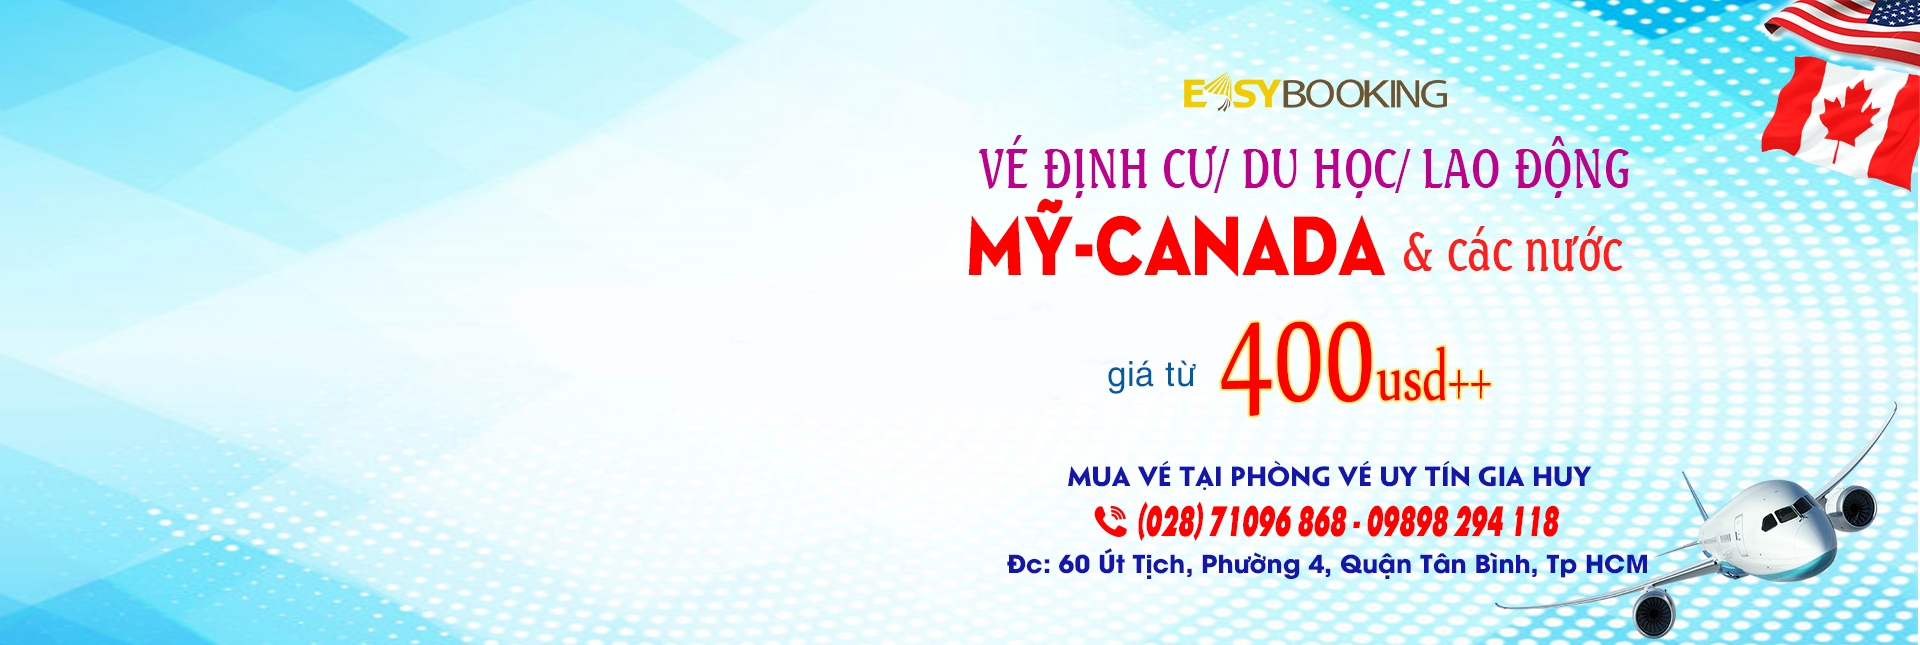 my - canada - ve- dinh cu - du hoc - lao dong 09-2020